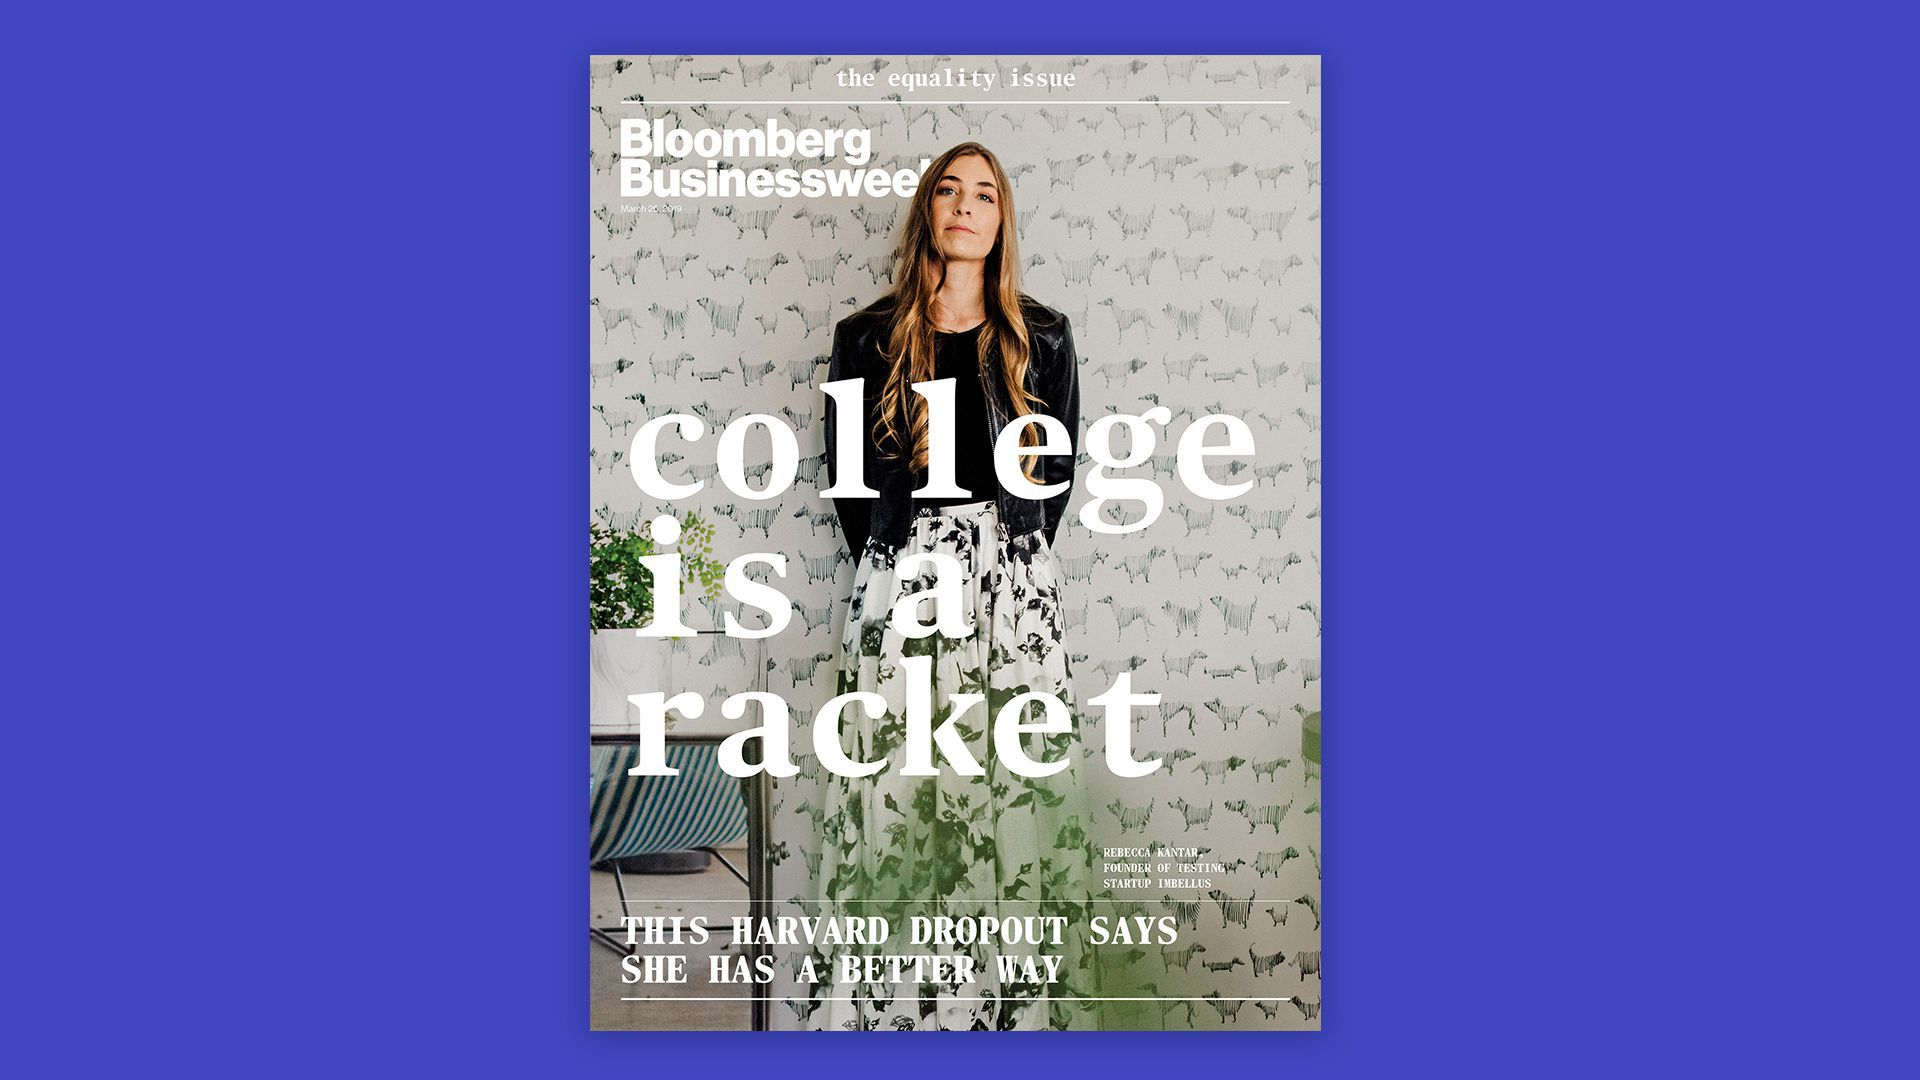 Cover of Bloomberg businessweek